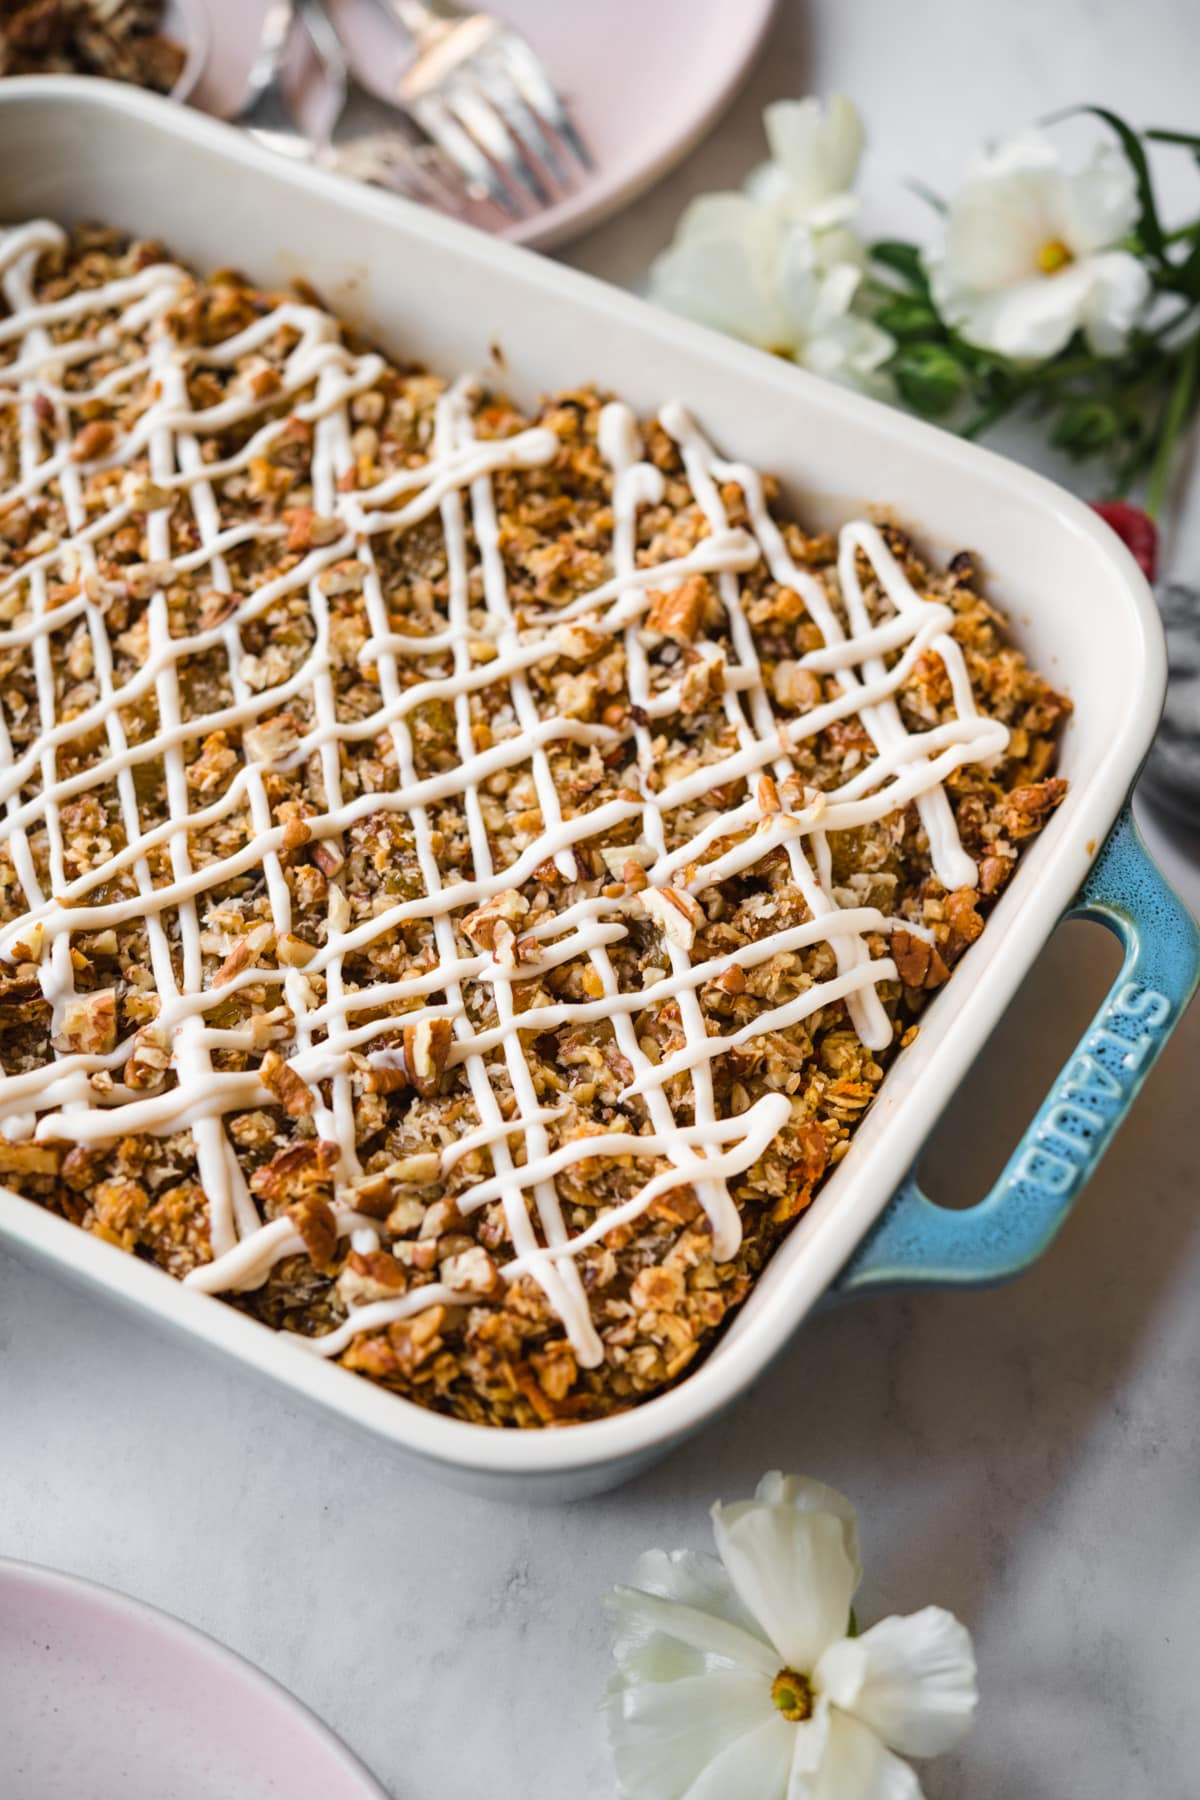 close up view of vegan carrot cake baked in a blue baking dish with cream cheese glaze.